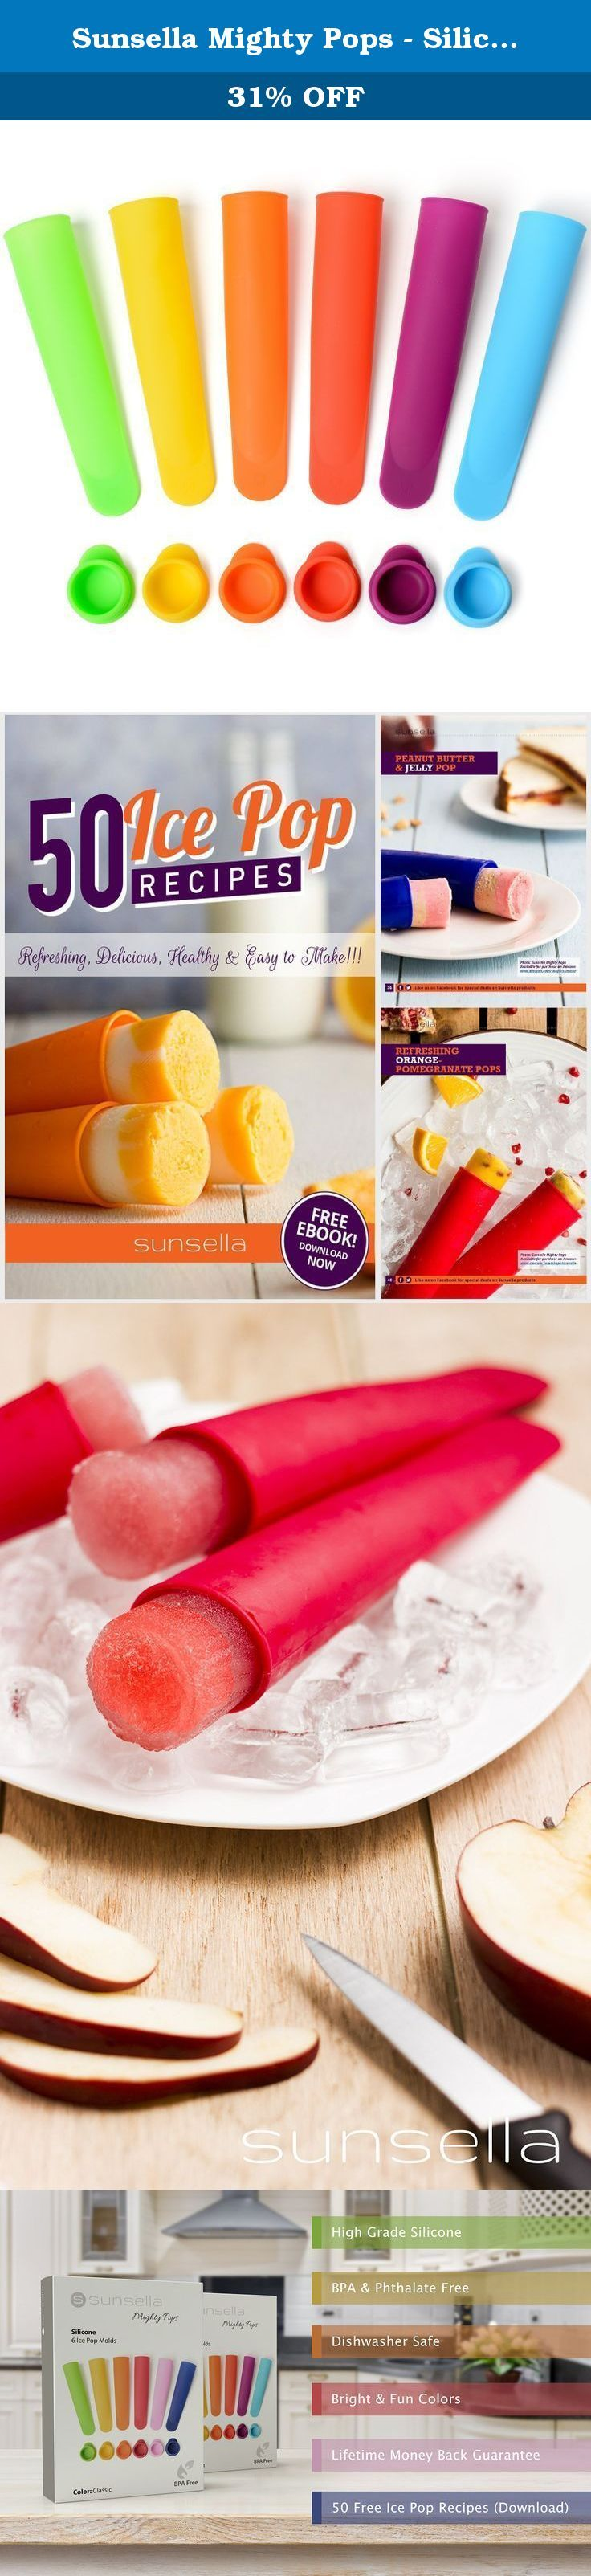 Sunsella Mighty Pops - Silicone Popsicle - Ice Pop Molds - 6 Pack. FREE 50 ICE POP RECIPES EBOOK (DIGITAL DOWNLOAD) Make Your Own Healthy & Tasty Ice Pops with our Easy to Use, No Mess, BPA Free, Silicone Popsicle Molds Our silicone ice pop makers are an easy, no fuss way to make the perfect ice pop. Mums will love the no mess design, simply remove the lid and the ice pop easily slides right out. No need to worry about them melting all over the place! Other benefits of Sunsella Mighty…